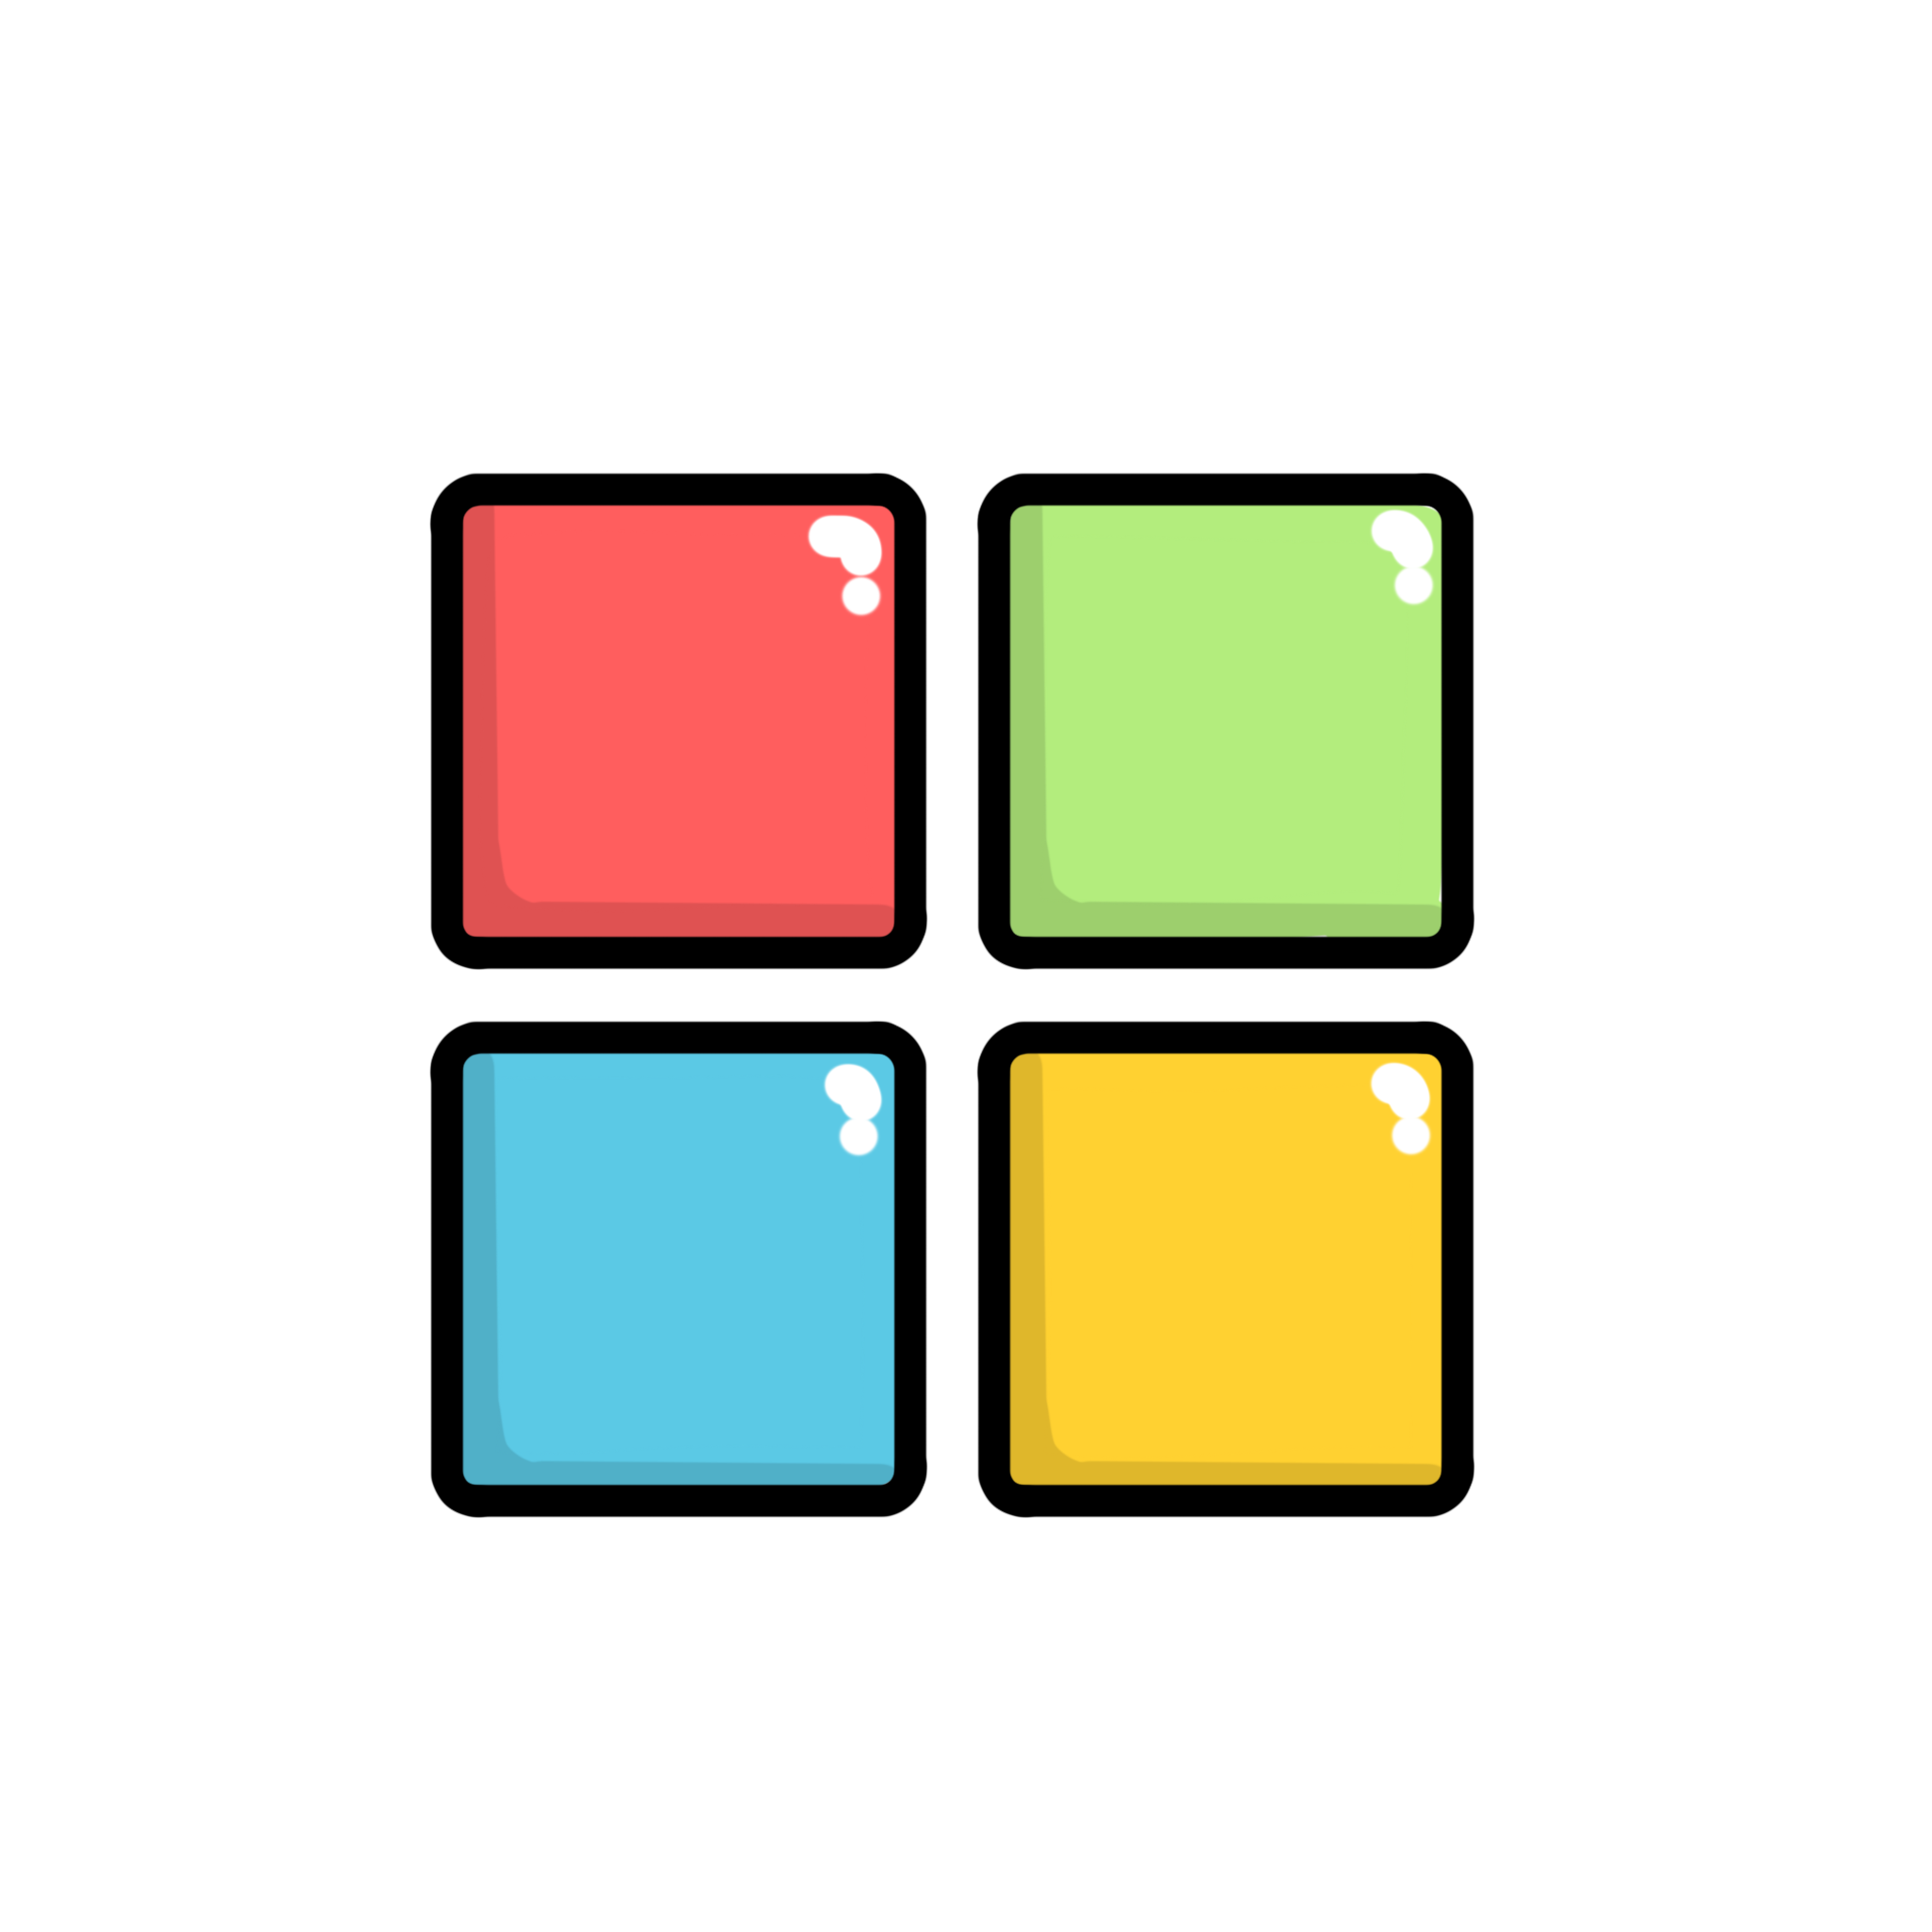 Windows logo red, green, blue and yellow